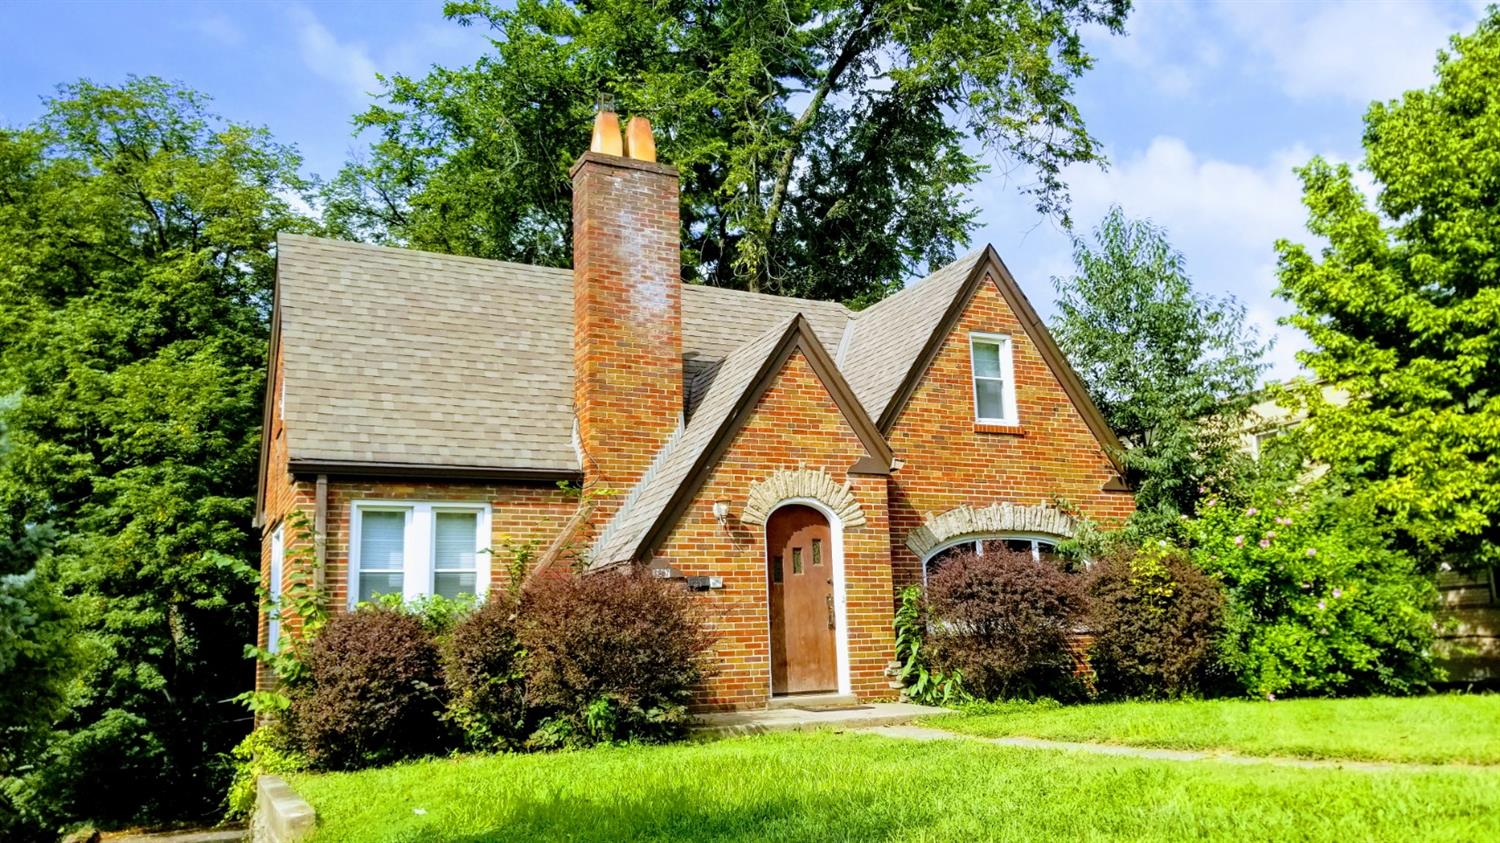 Property for sale at 6257 Beech View Circle, Cincinnati,  OH 45213